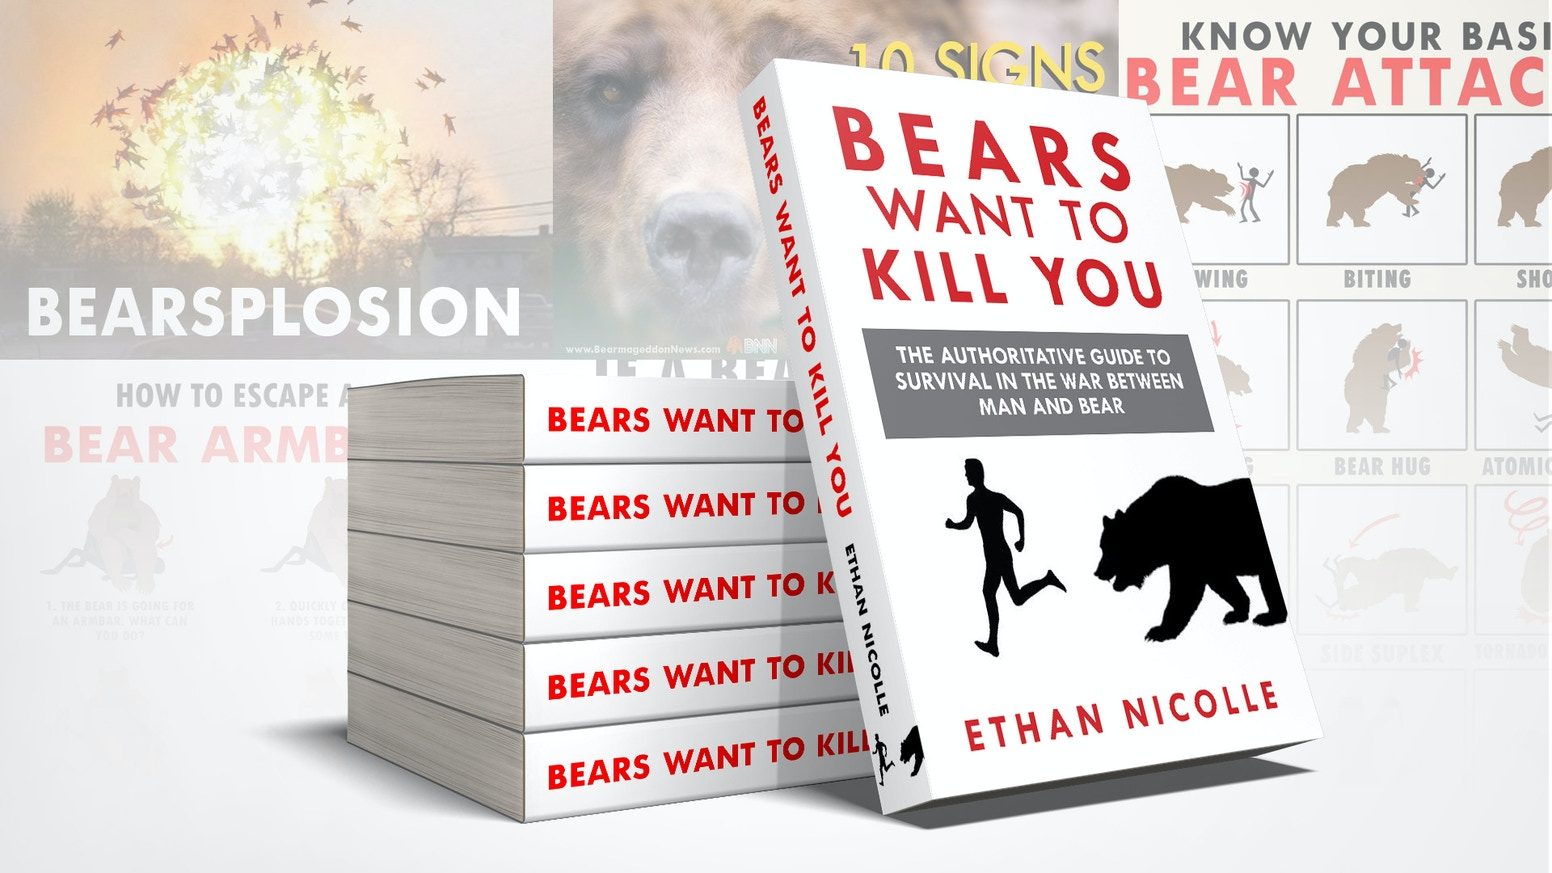 The authoritative guide to survival in the war between man and bear. ORDER ON AMAZON or click here to buy from my store: